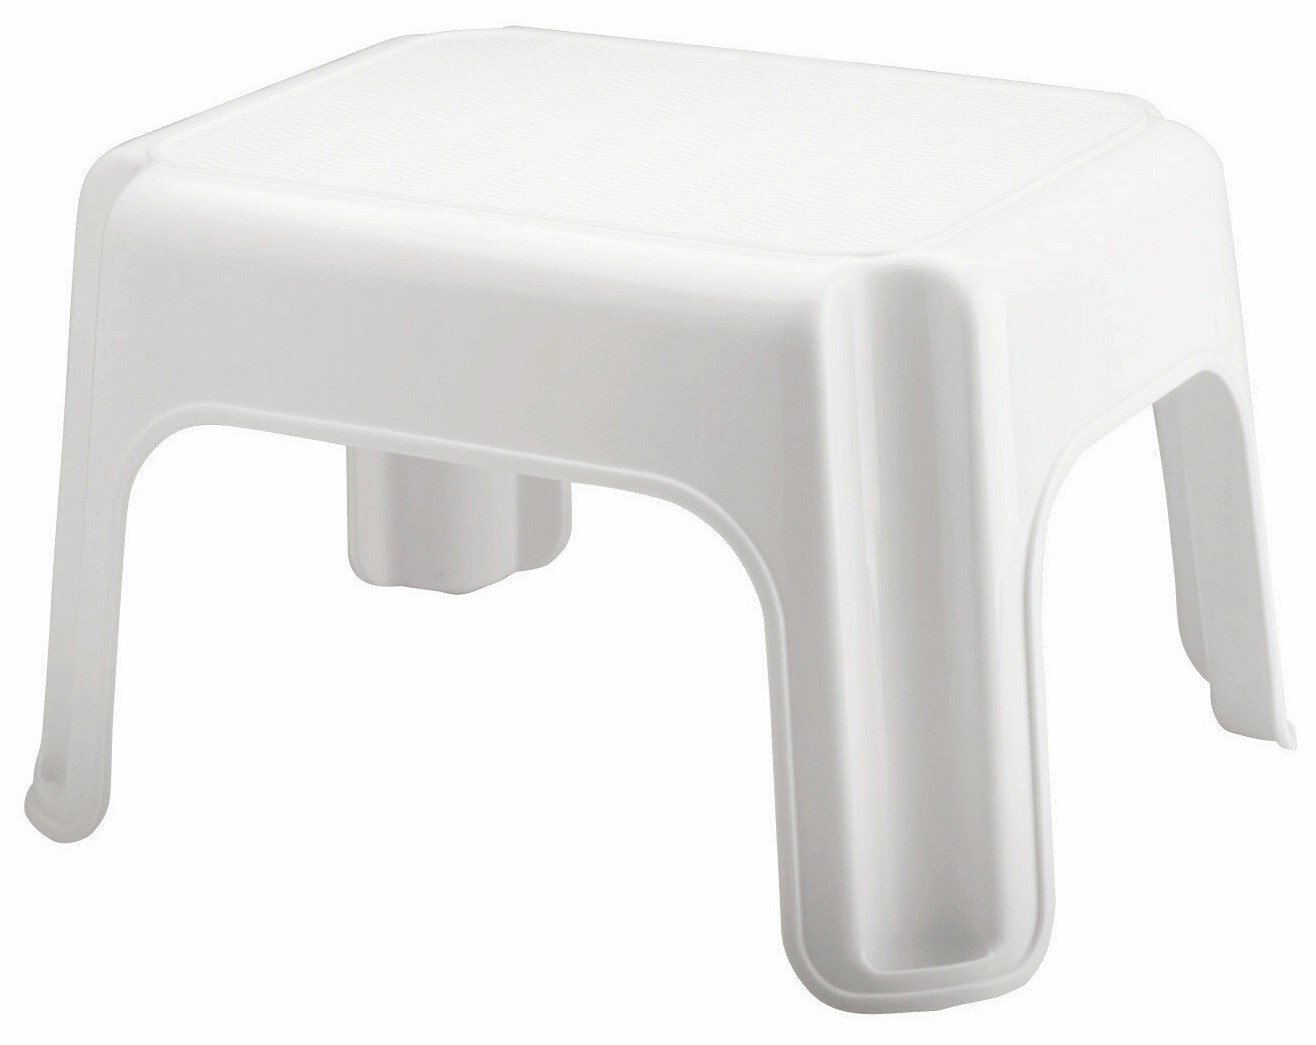 Rubbermaid Step Stool, Small Stool, White, Small (FG420087WHT)